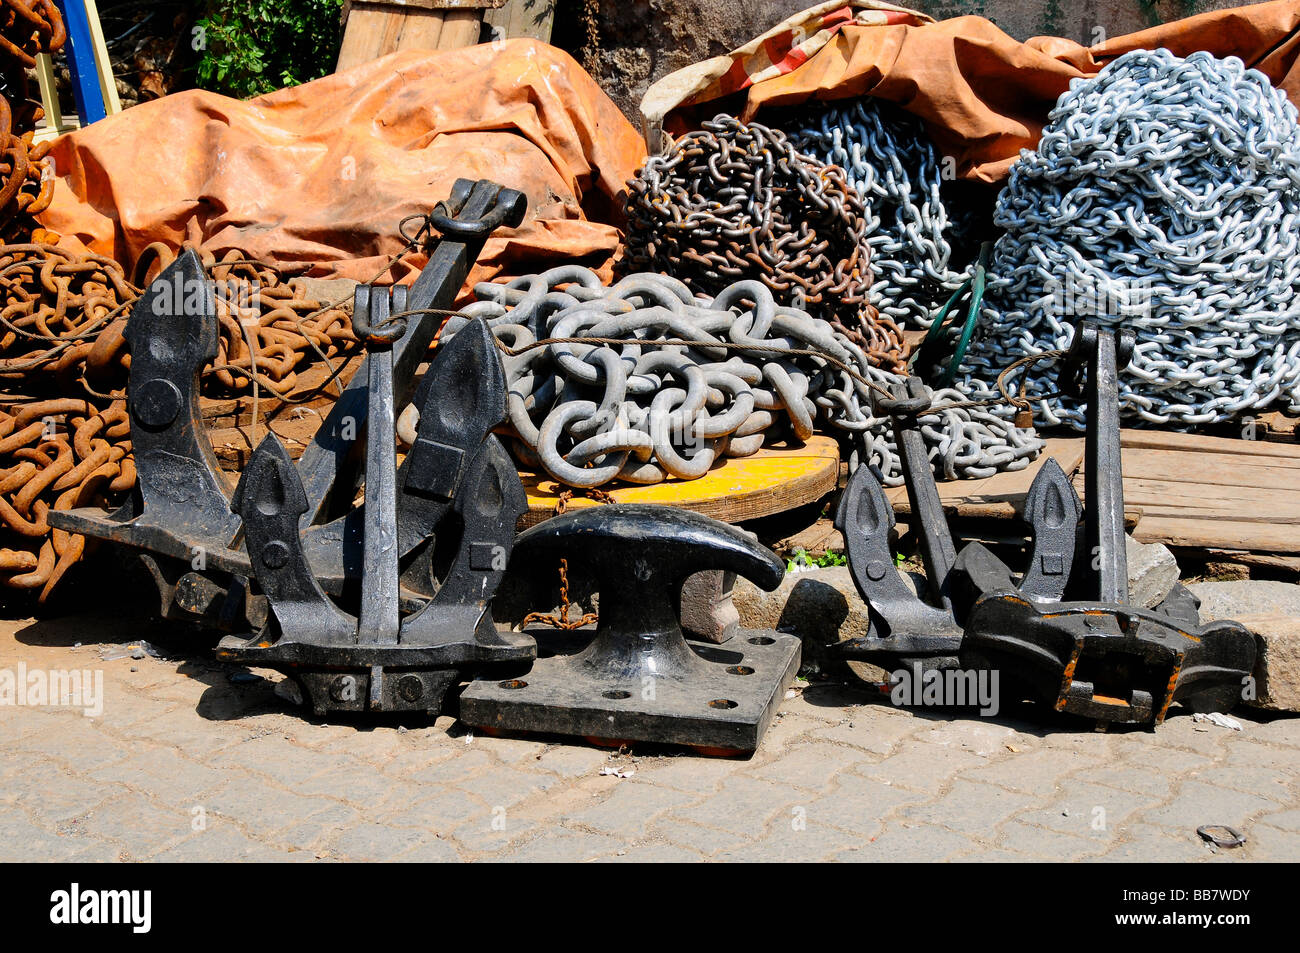 Anchors and chains for sale, Karakoy, Istanbul, Turkey - Stock Image